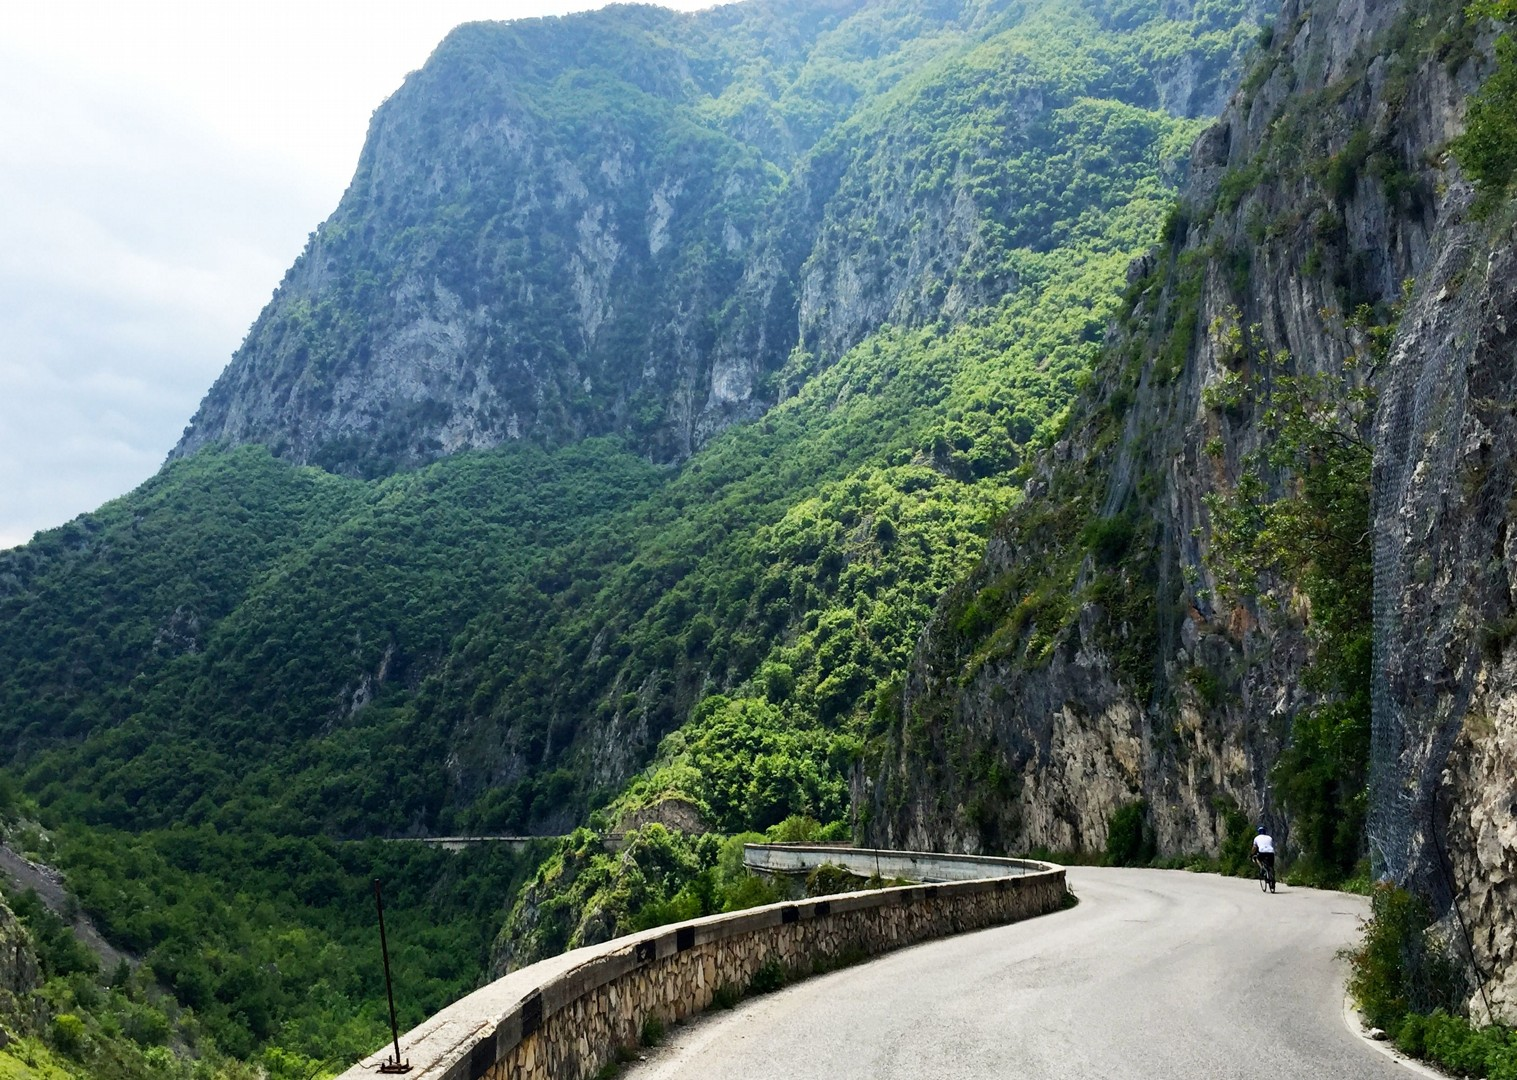 gorge-of-san-venenzio- guided-road-cycling-holiday-italy-abruzzo-appennini-dabruzzo.JPG - Italy - Abruzzo - Appennini d'Abruzzo - Guided Road Cycling Holiday - Road Cycling